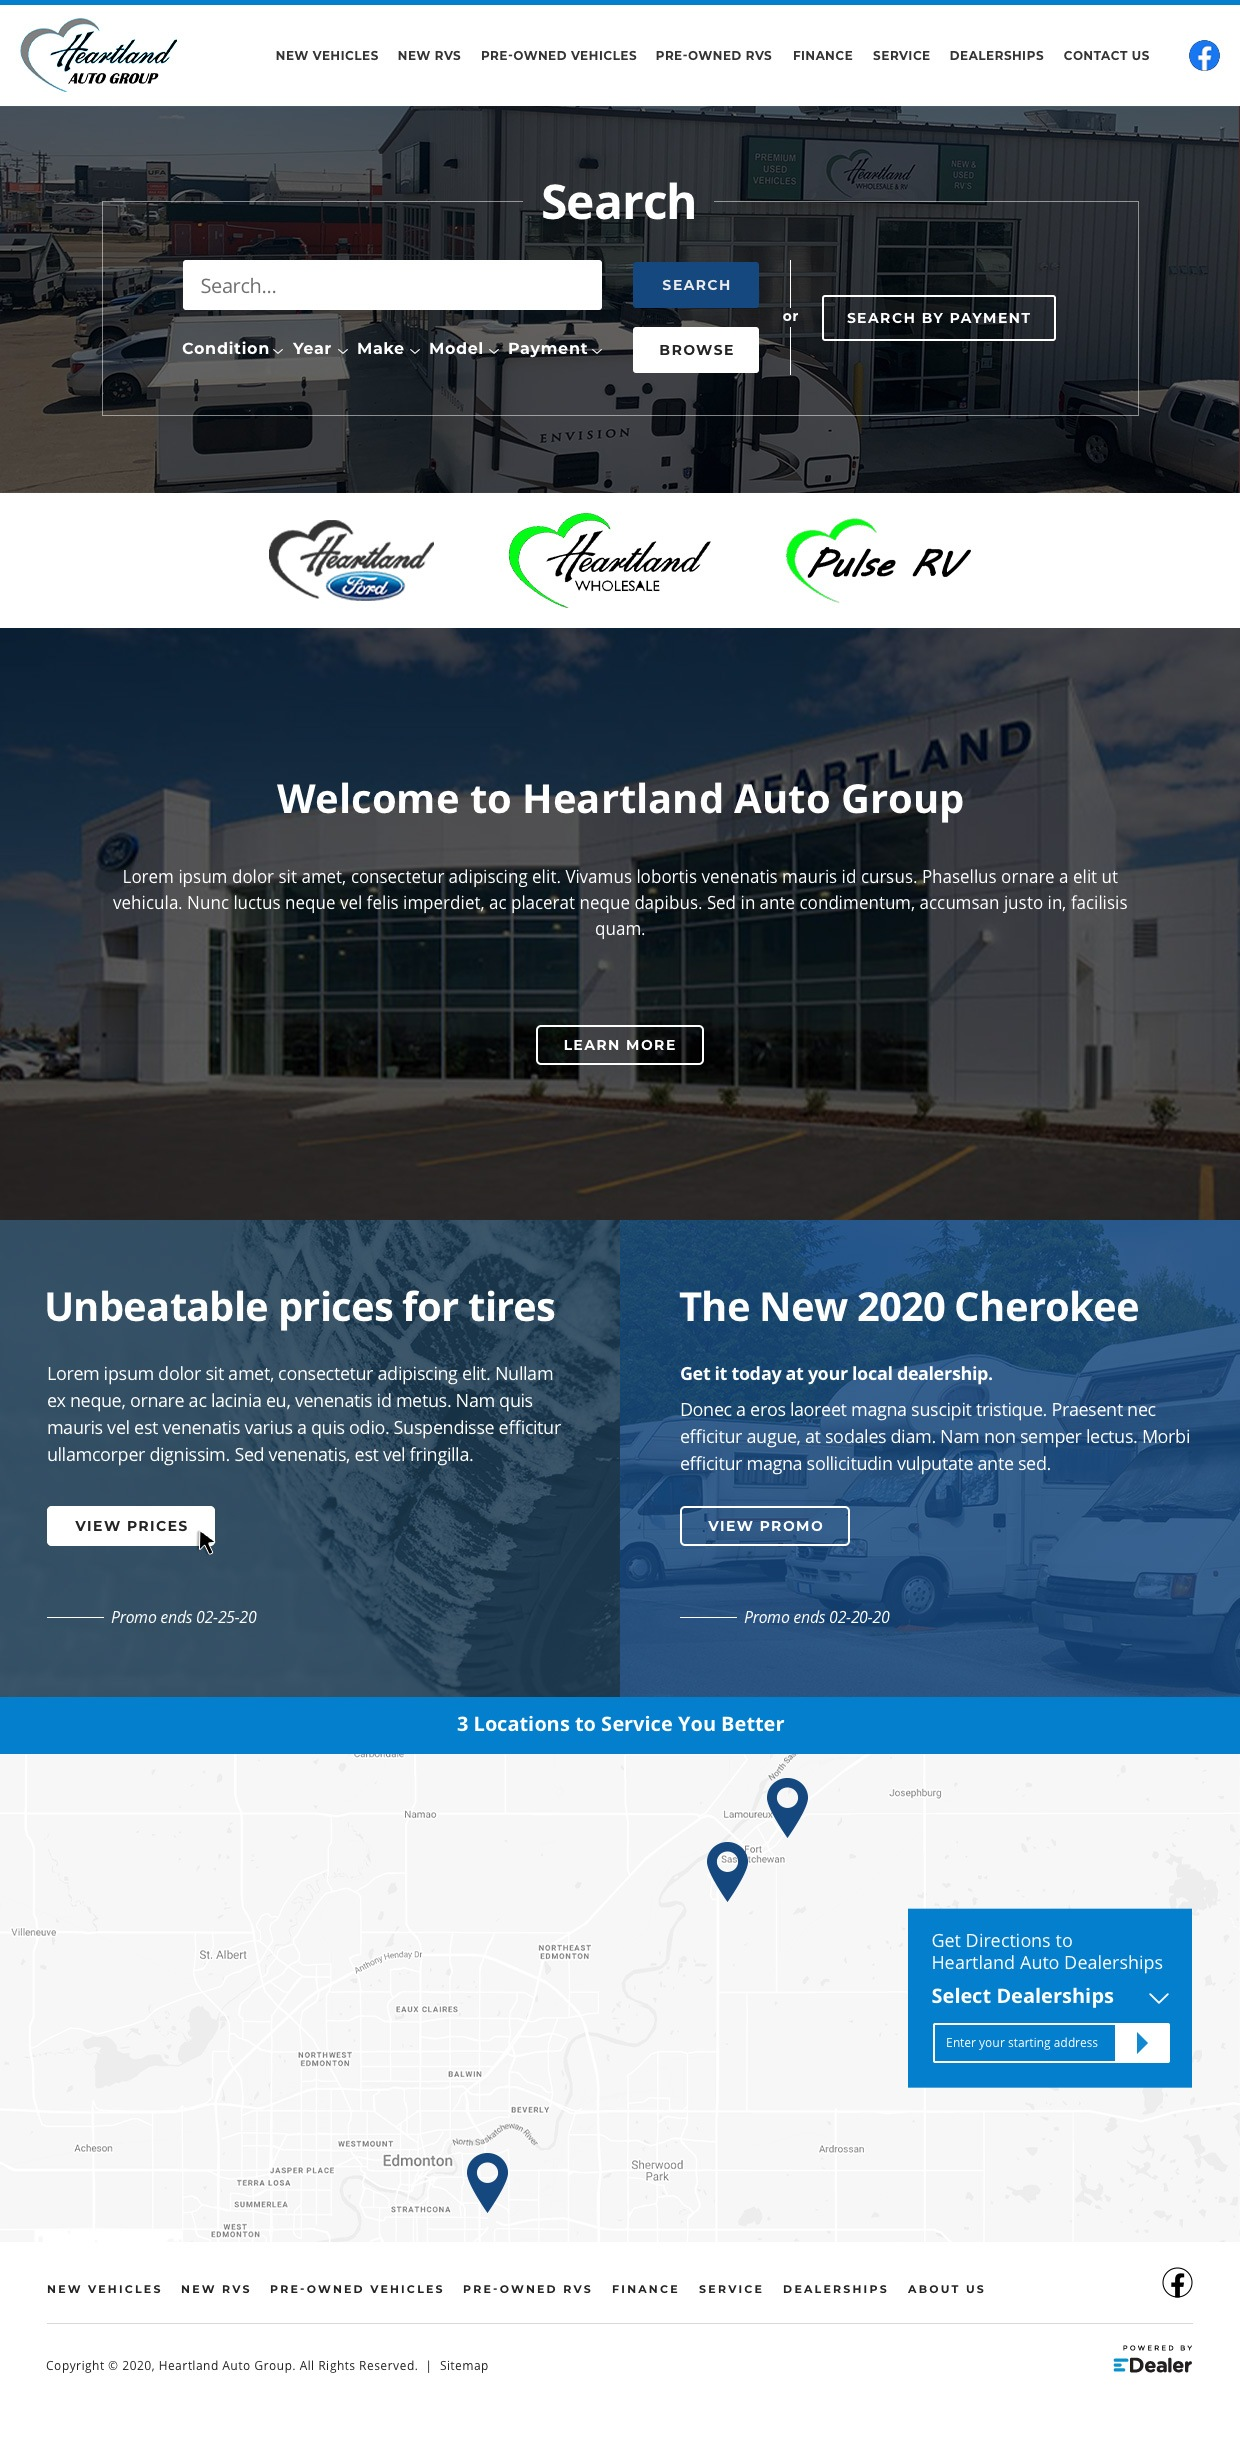 Heartland Auto Group